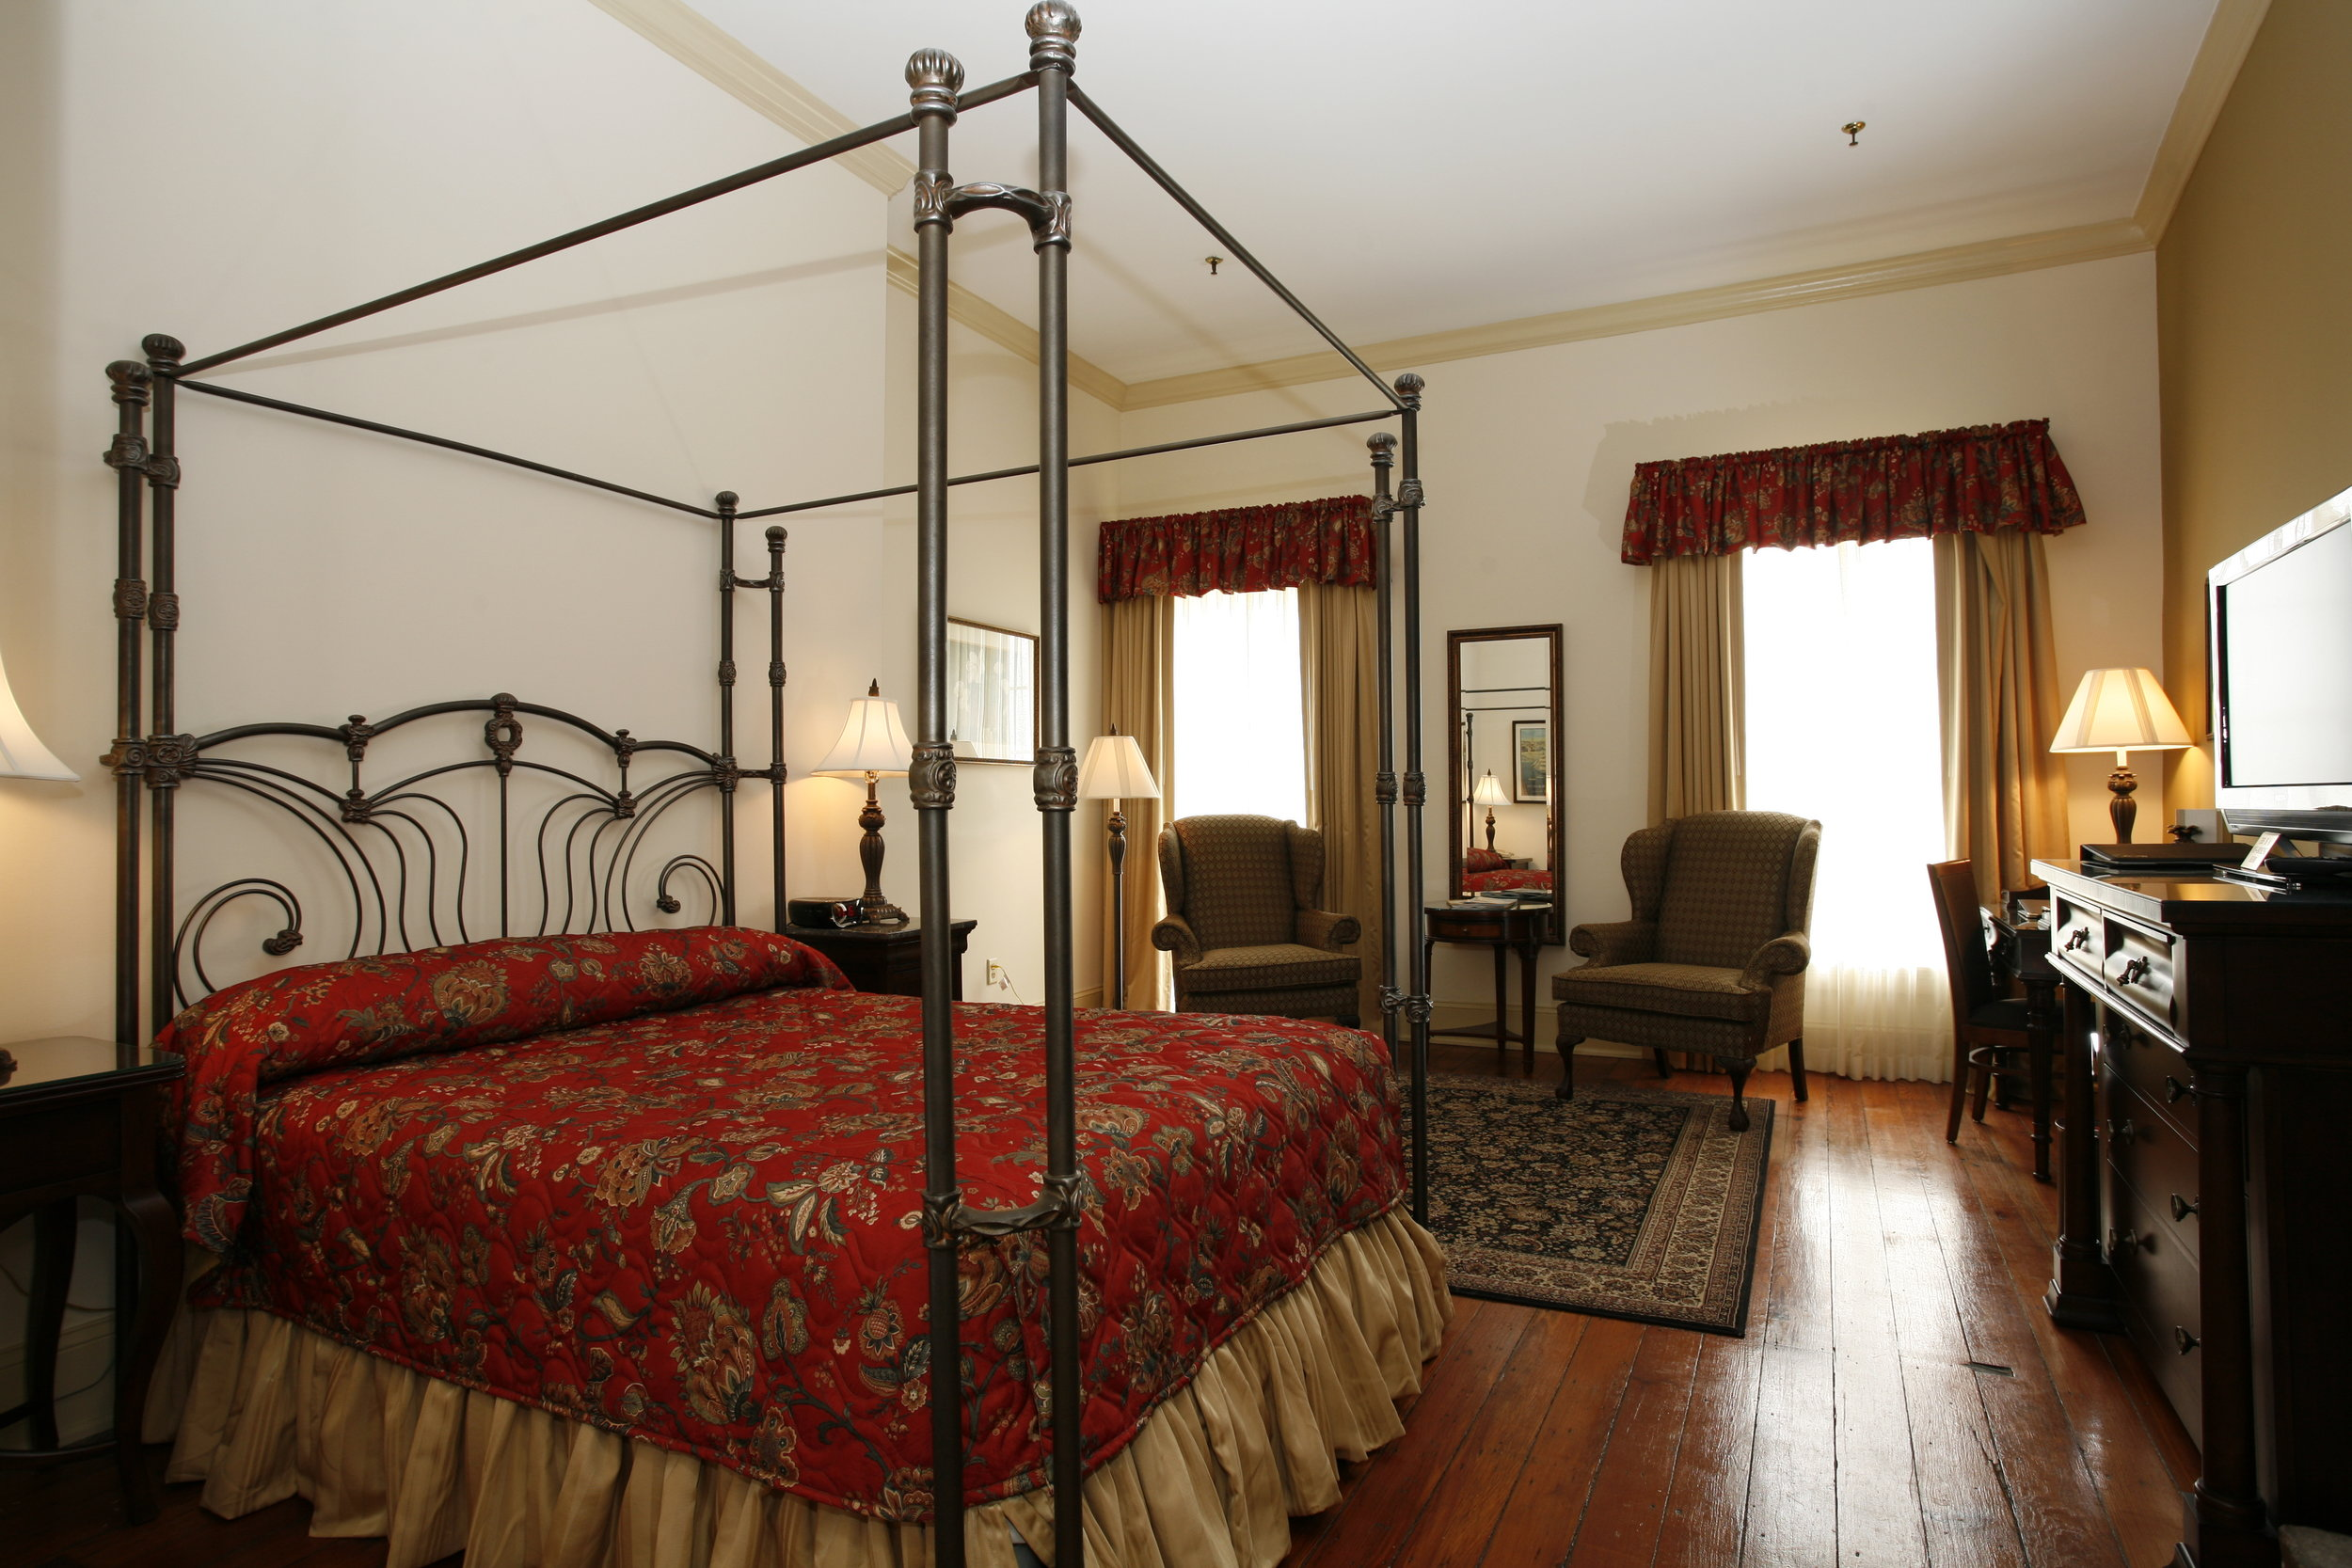 Riverstreet Inn Room .JPG